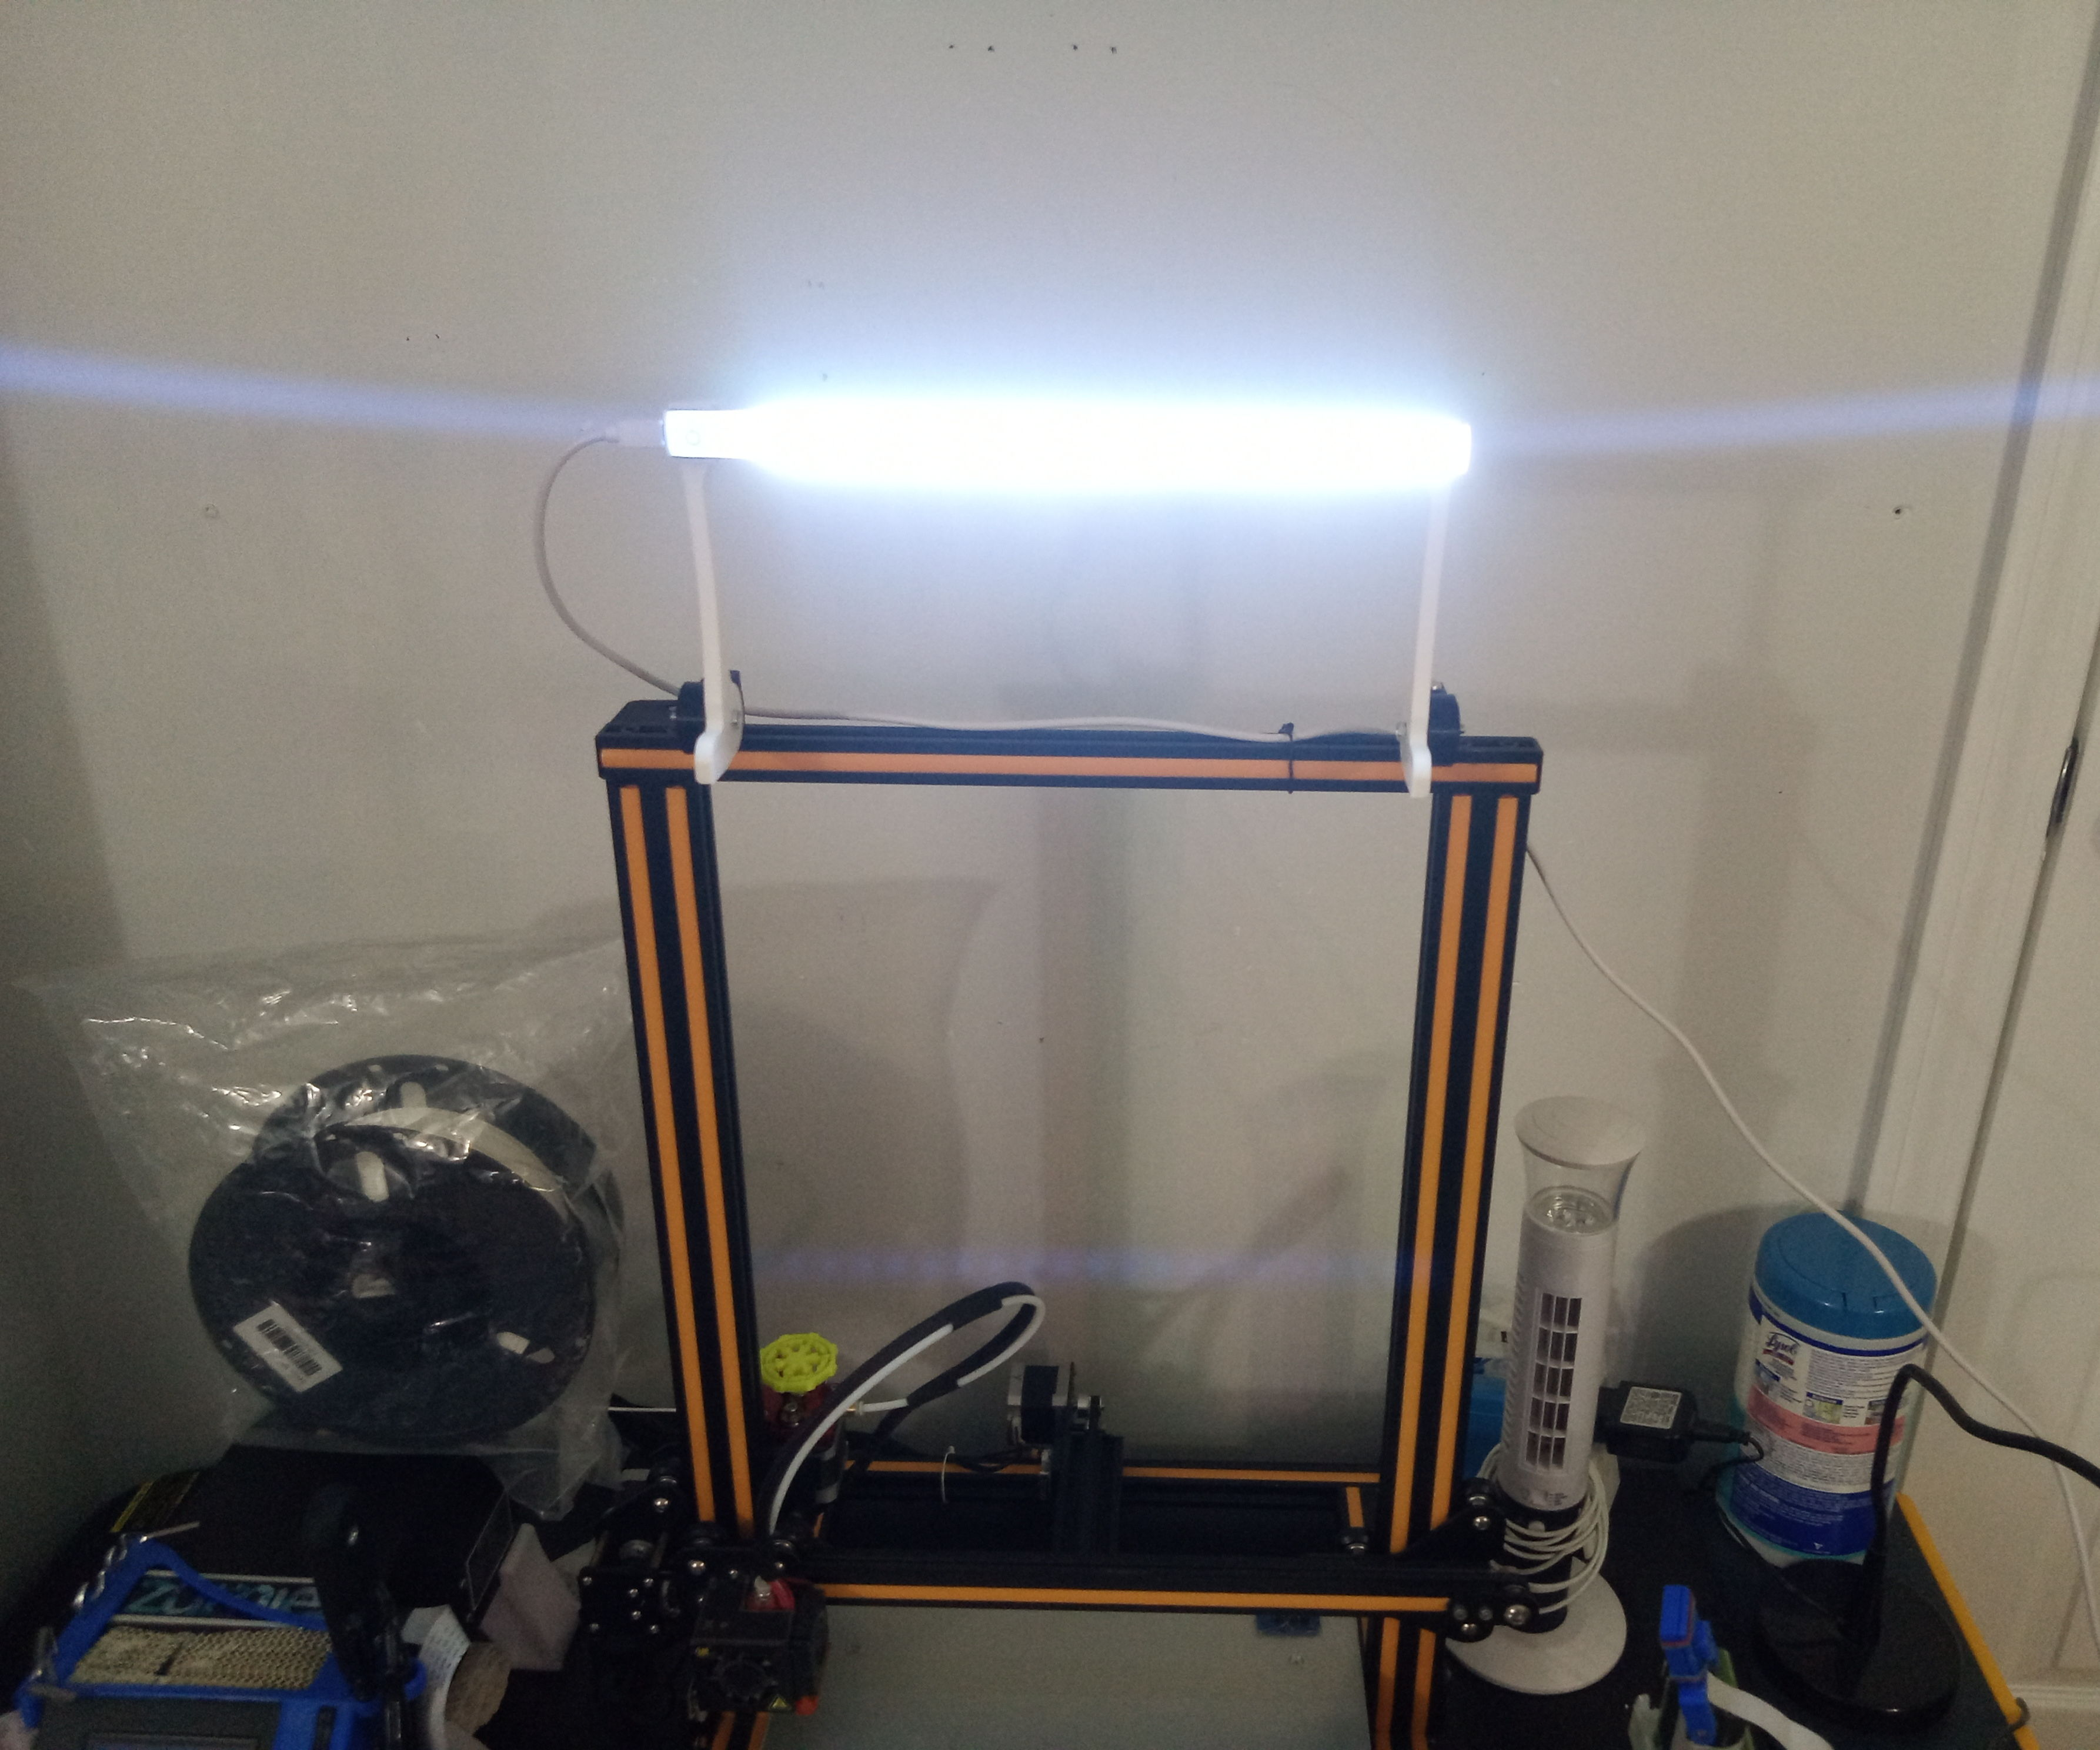 Drop-Gate LED Lighting Fixture for Creality CR-10 & Ender 3 3D Printers